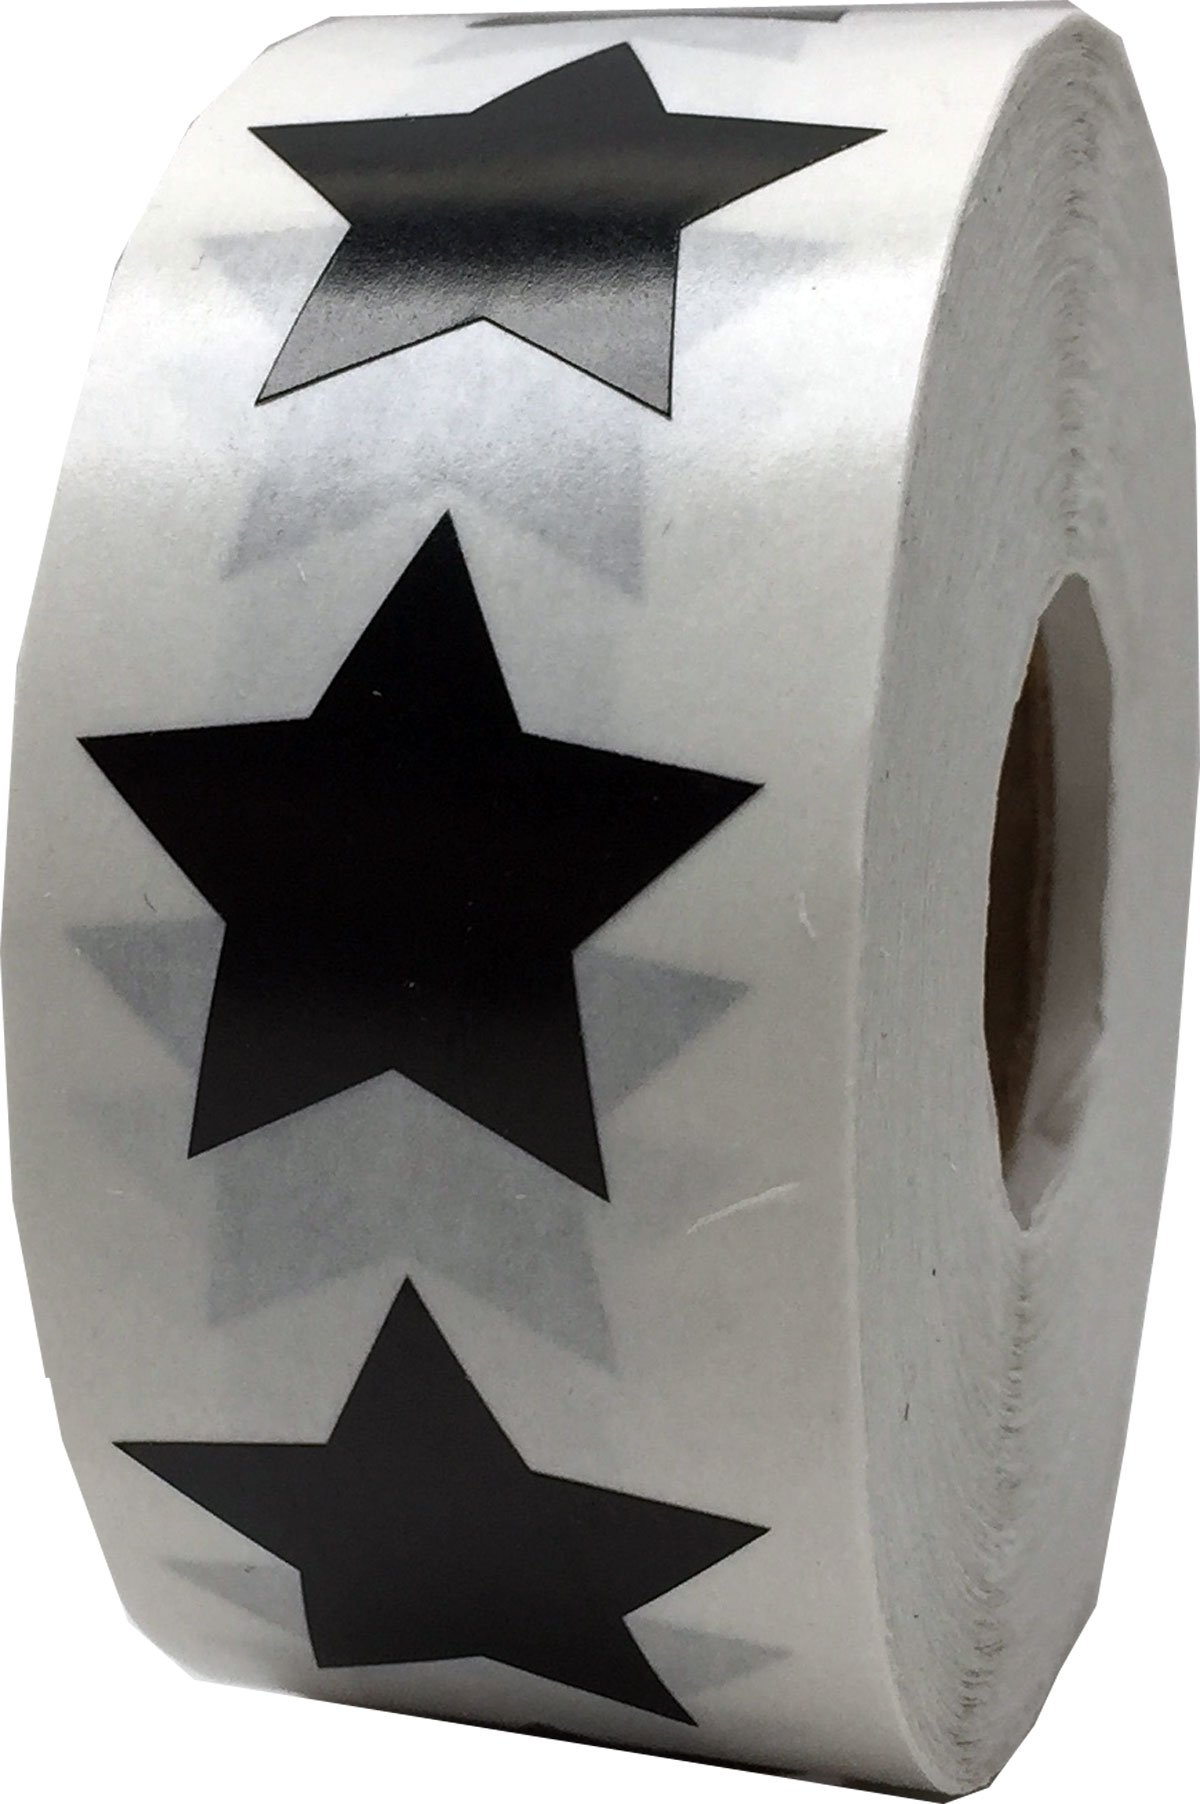 Black Star Stickers, 1 Inch in Size, 500 Labels on a Roll by InStockLabels.com (Image #1)